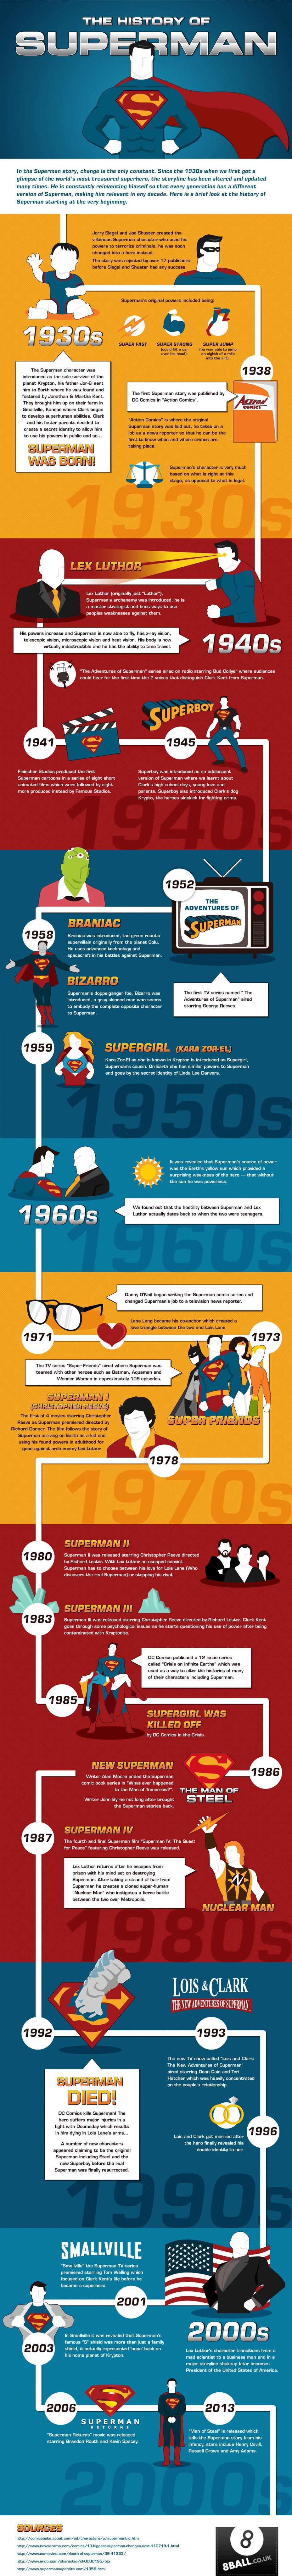 The History Of Superman (Infographic)